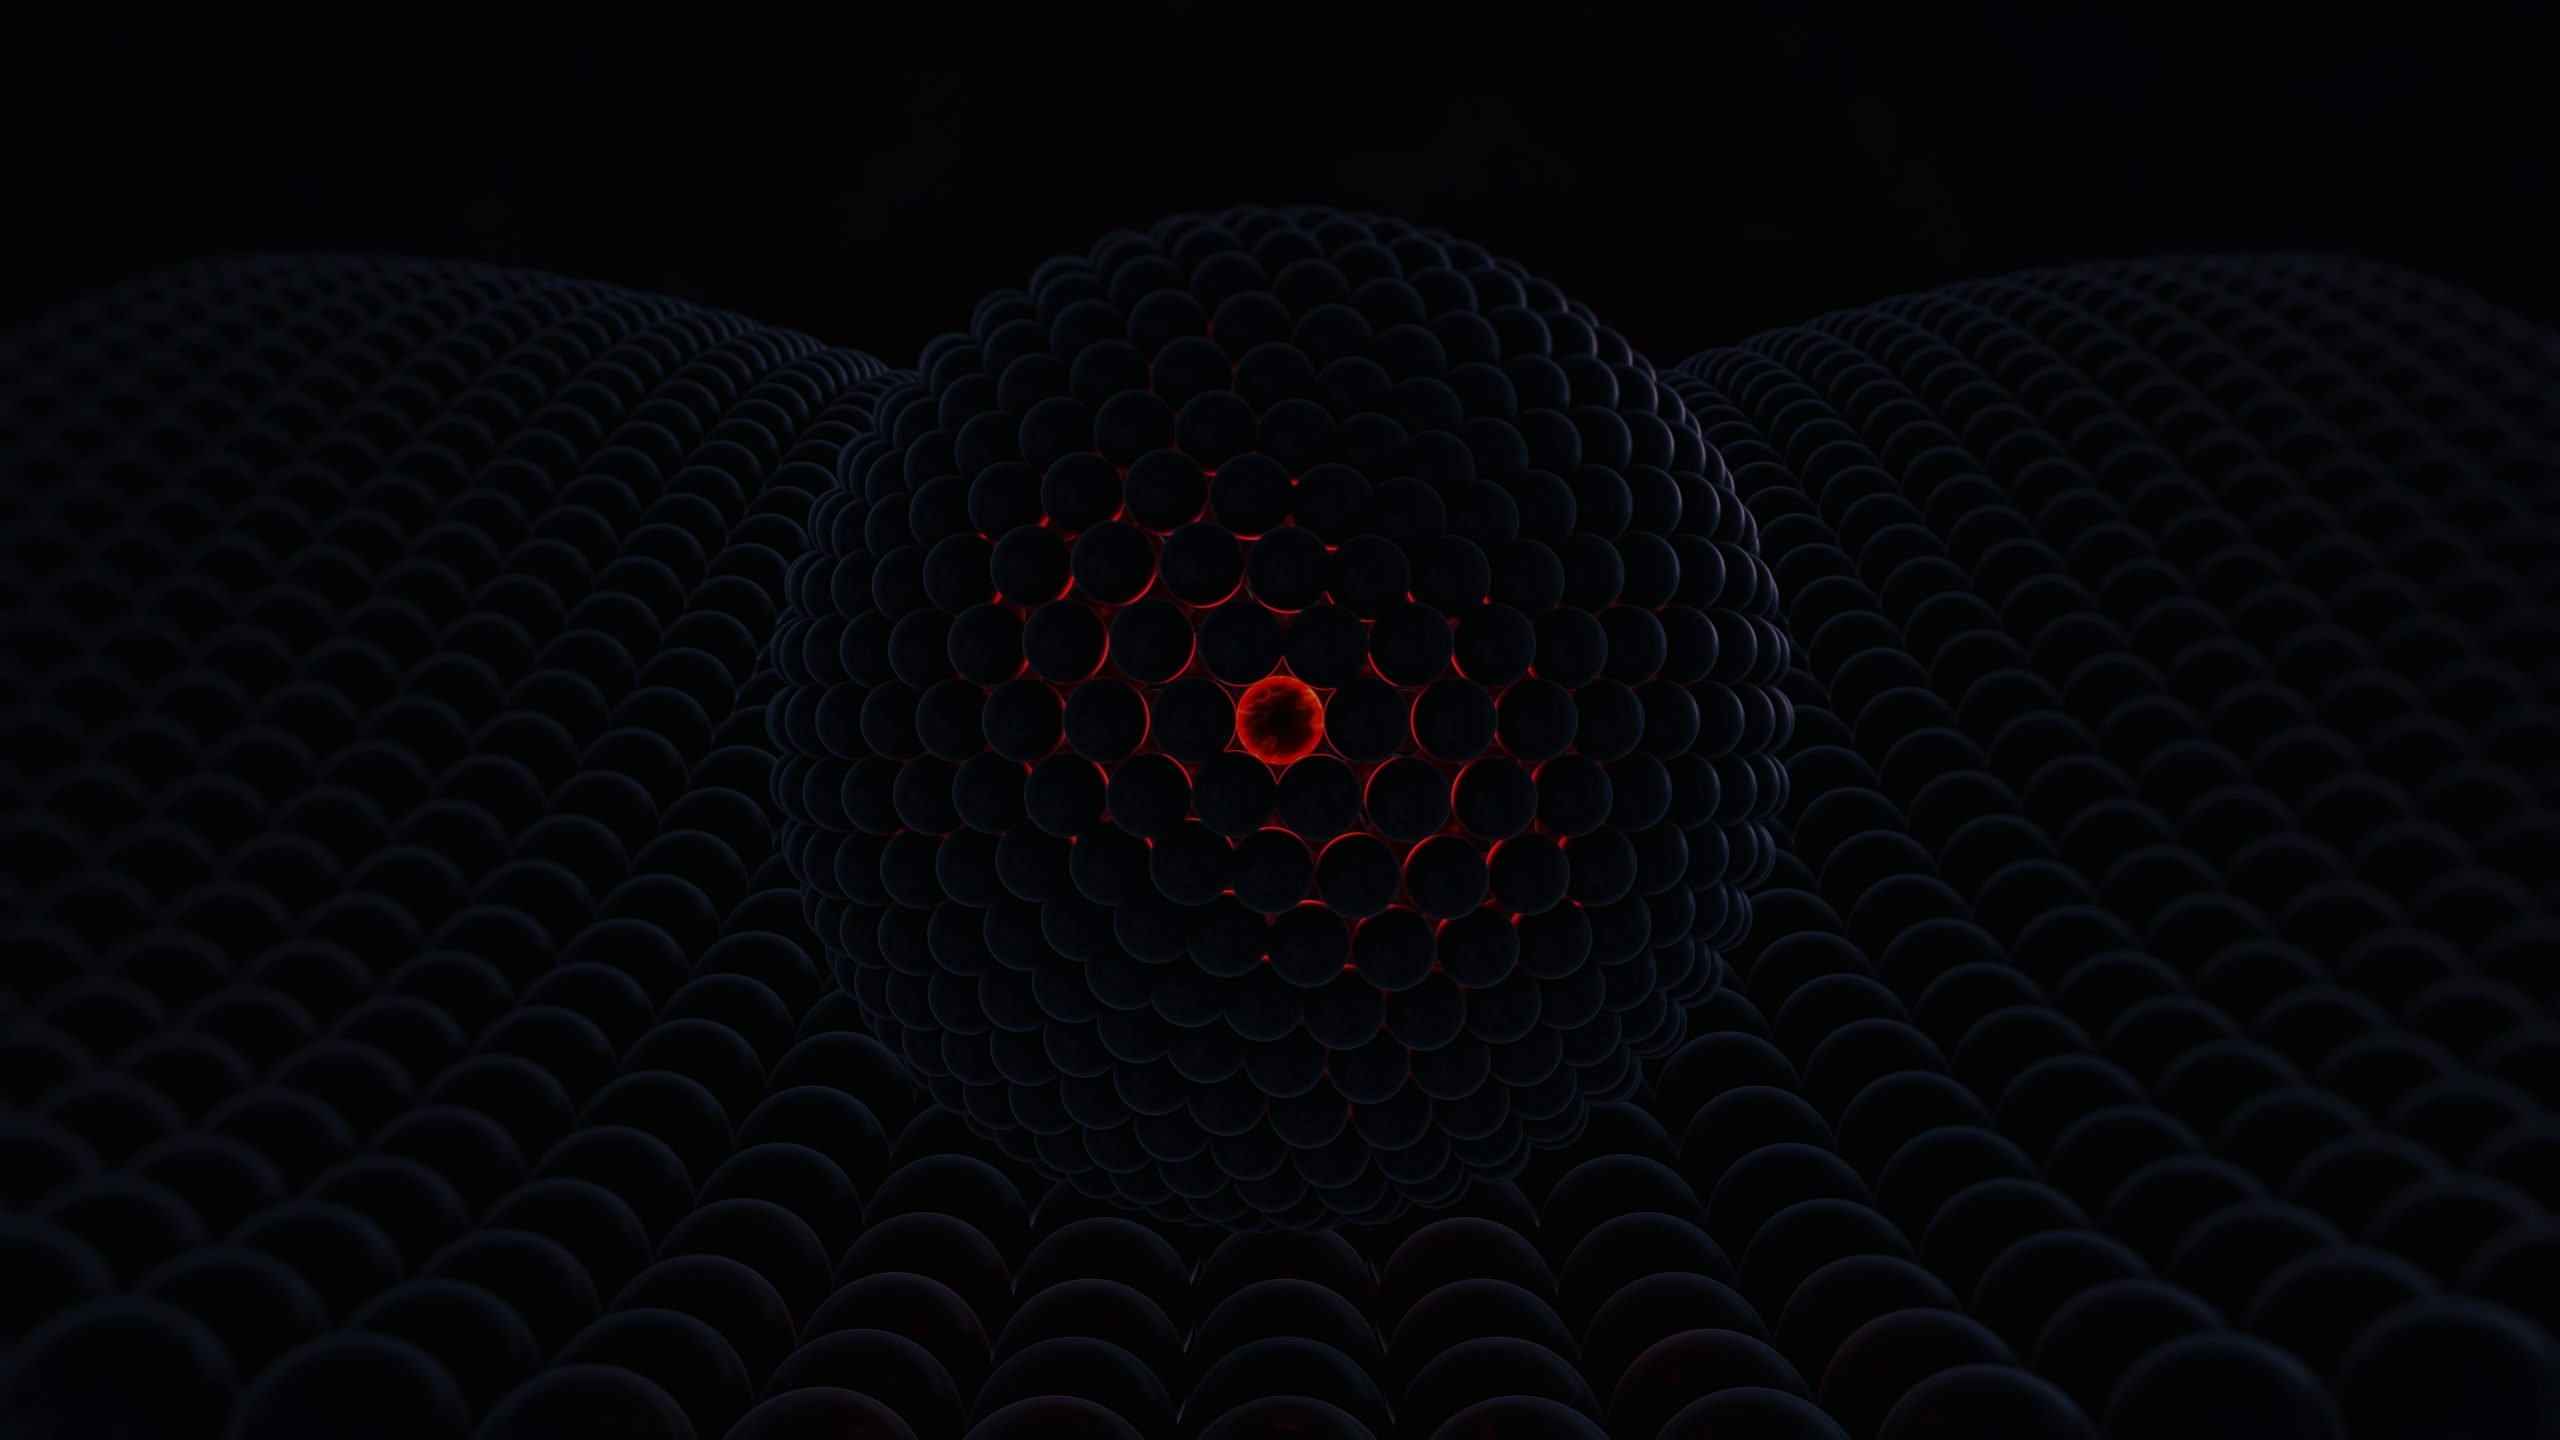 Dark Wallpaper Dark Wallpaper Orb Abstract 3d Abstract Glowing Dark Red 3d Design Wallpaper For You The Best Wallpaper For Desktop Mobile